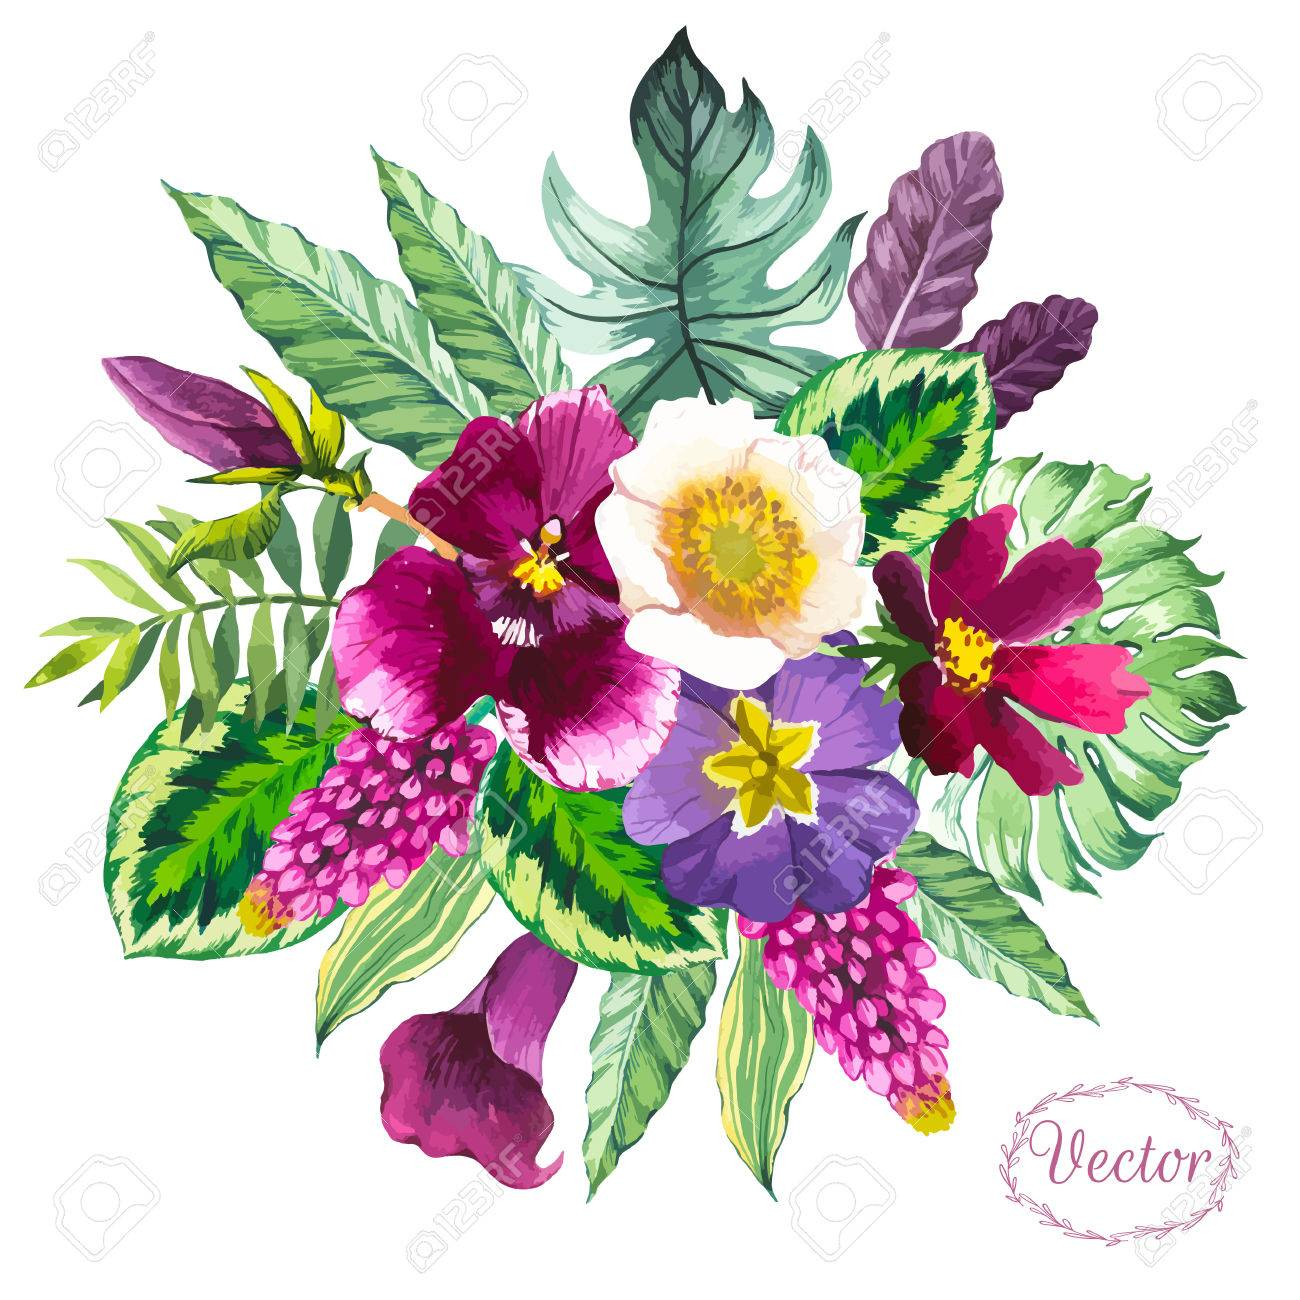 Beautiful bouquet tropical flowers and plants on white background beautiful bouquet tropical flowers and plants on white background composition with monstera and palm leaves izmirmasajfo Gallery